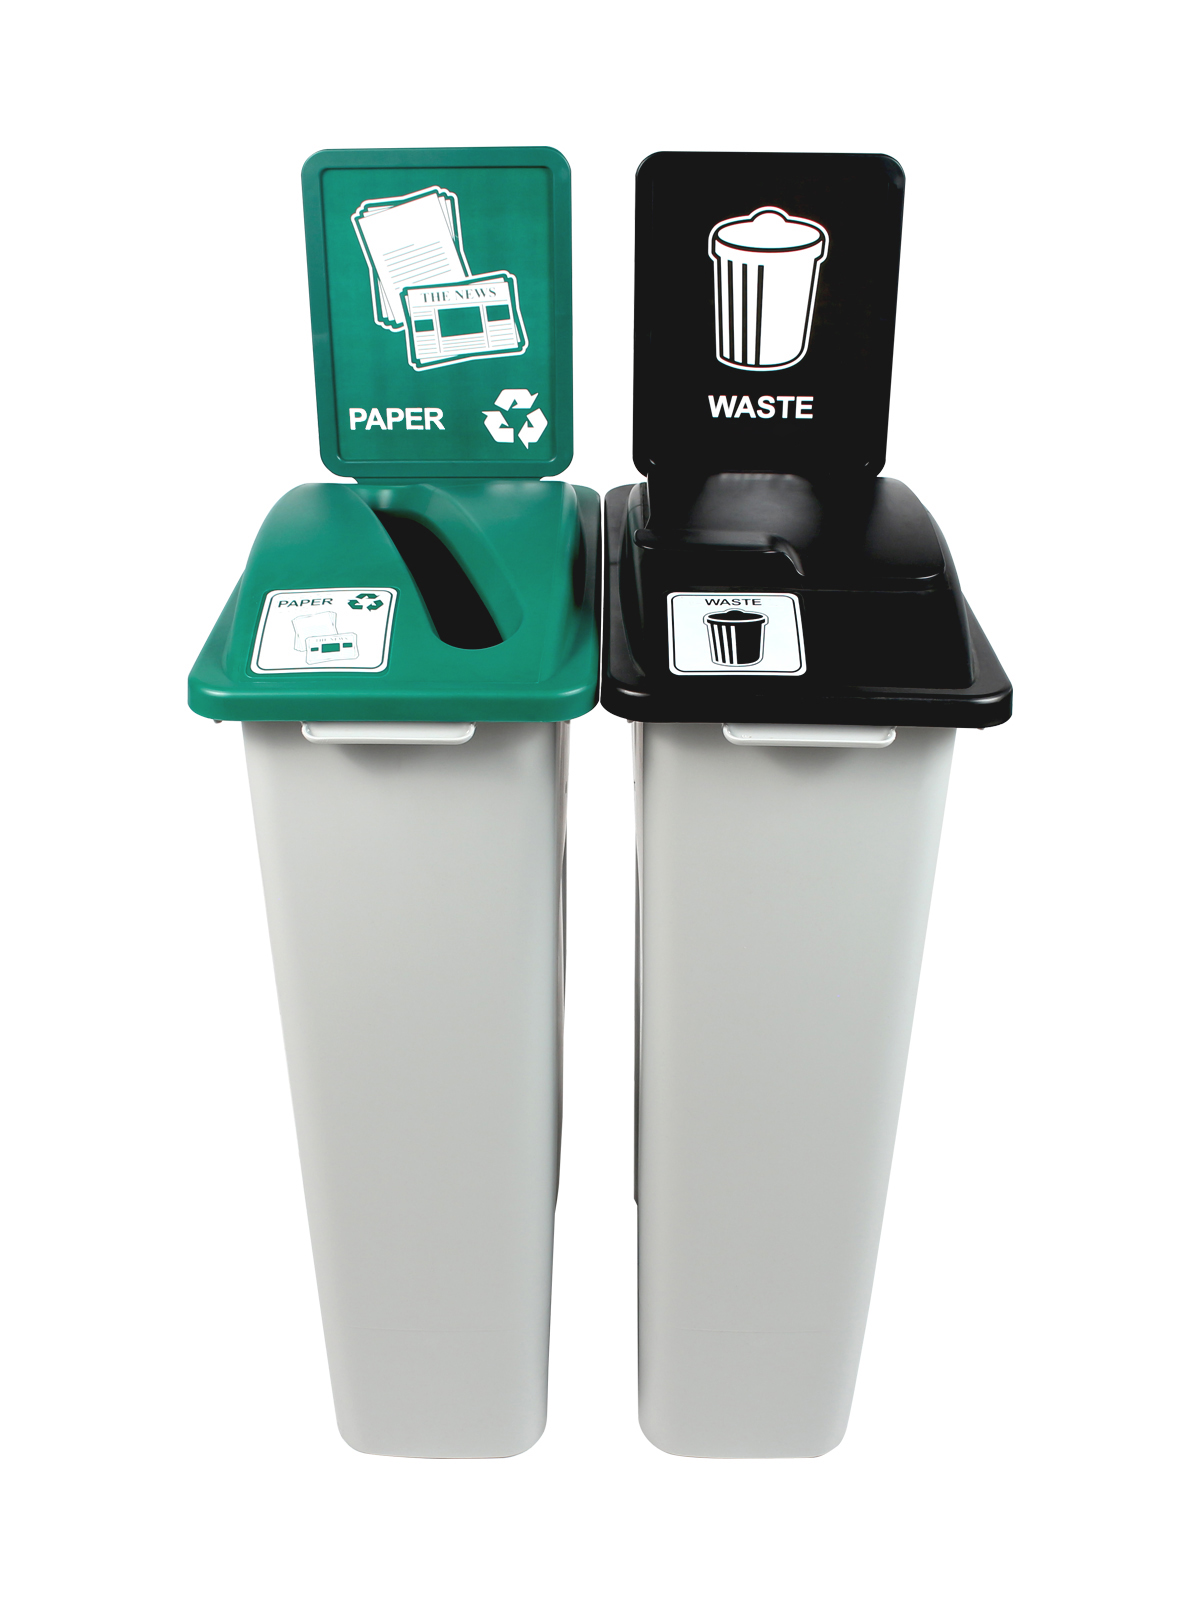 WASTE WATCHER - Double - Paper-Waste - Slot-Solid Lift - Grey-Green-Black